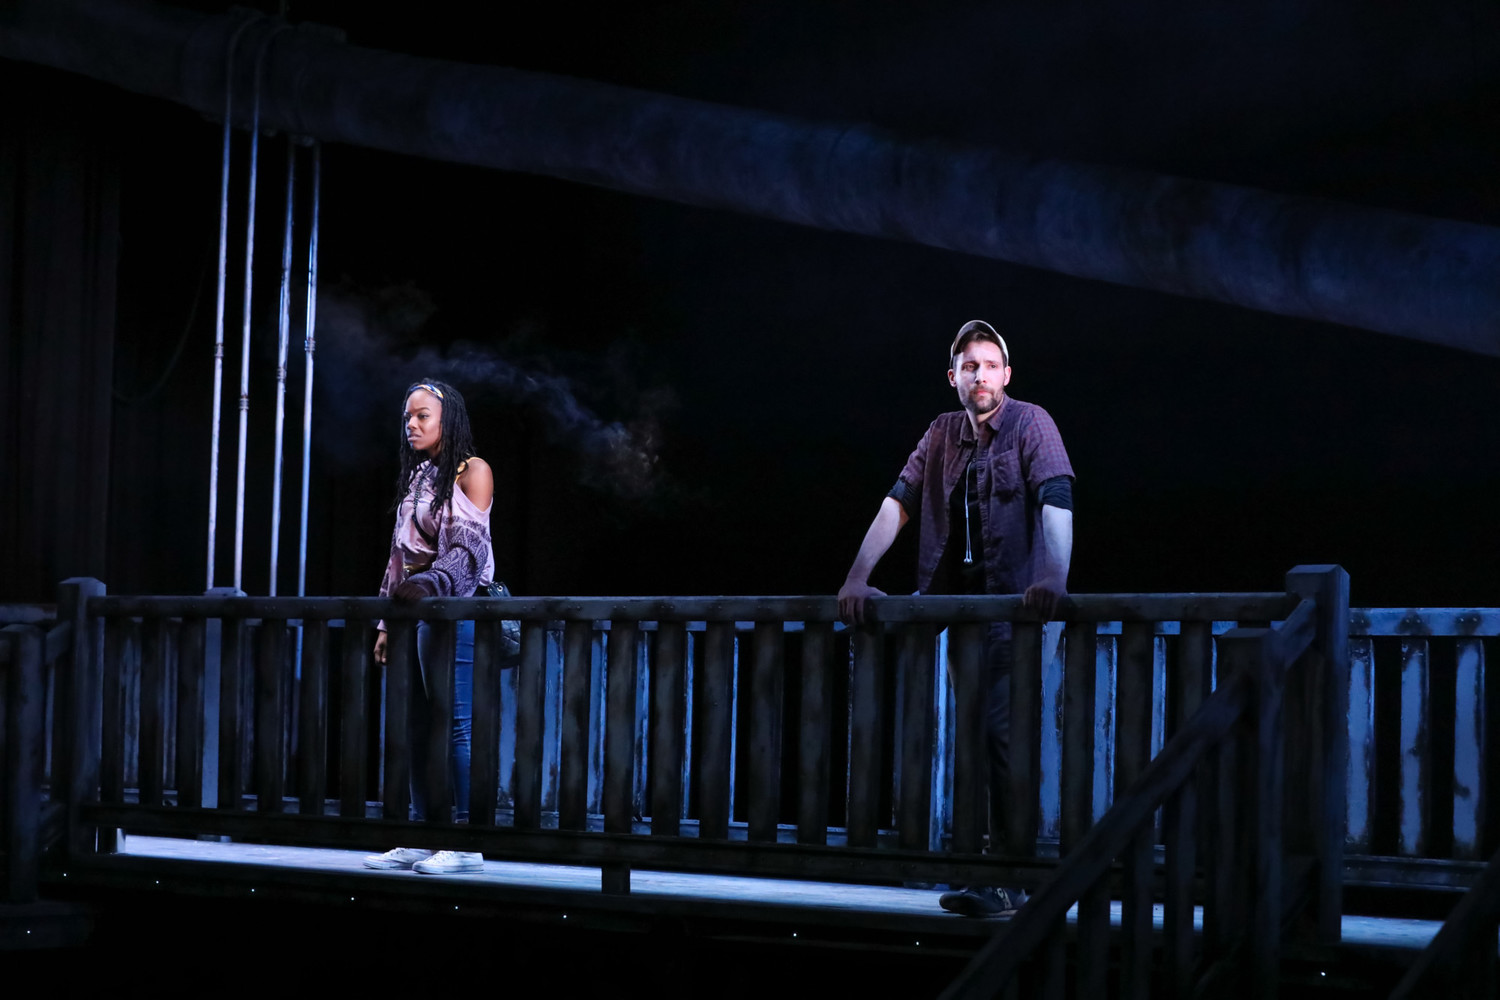 BWW Review: Exquisite Storytelling Makes the PlayMakers' World Premiere of Charly Simpson's JUMP a Must-See